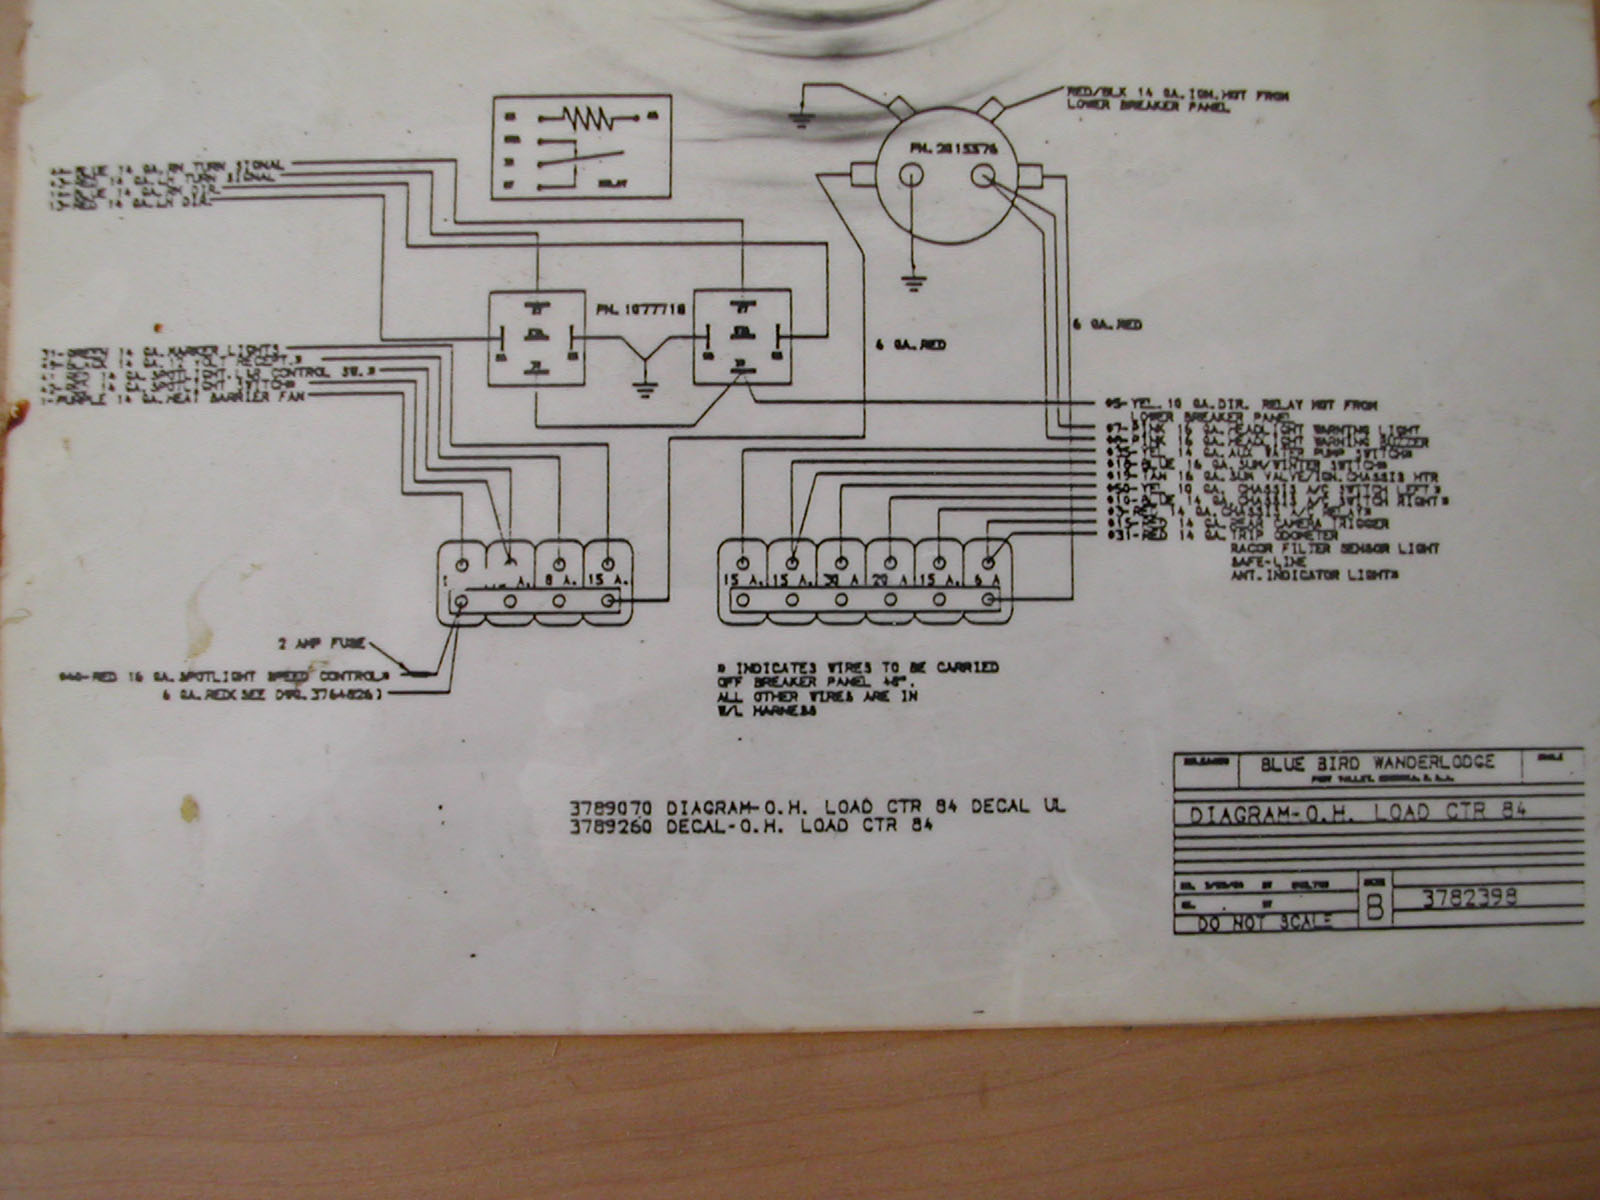 Bmc Motor 3 Phase Panel Wiring Diagram Data Library 242756 1984 Overhead Load Center Www